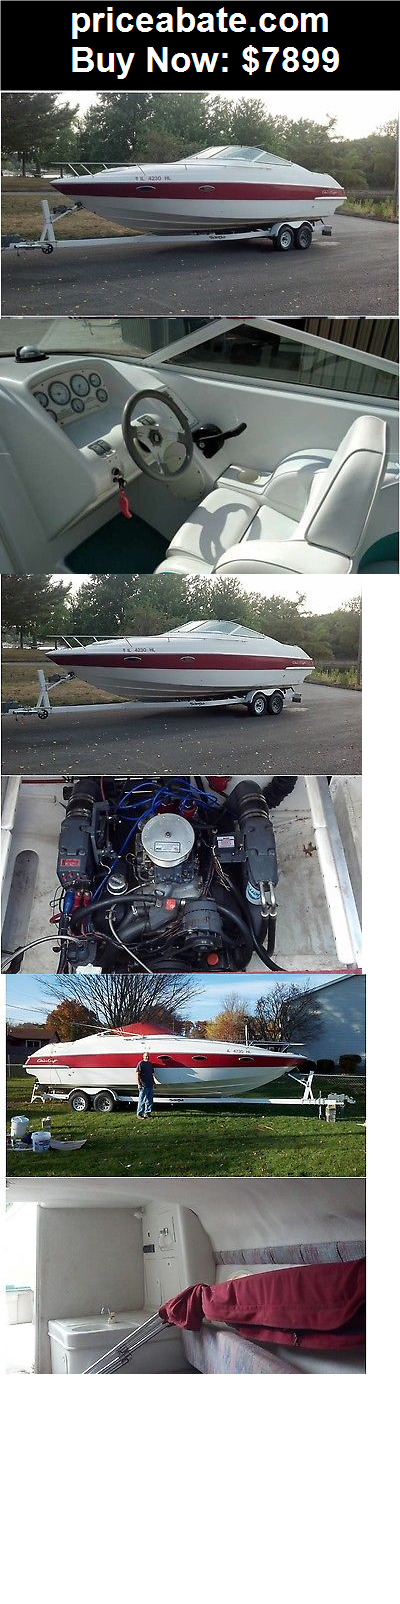 Boats: CHRIS CRAFT CONCEPT 258. Cuddy WITH DOUBLE AXEL TANDILUM TRAILER FRESH WATER - BUY IT NOW ONLY $7899